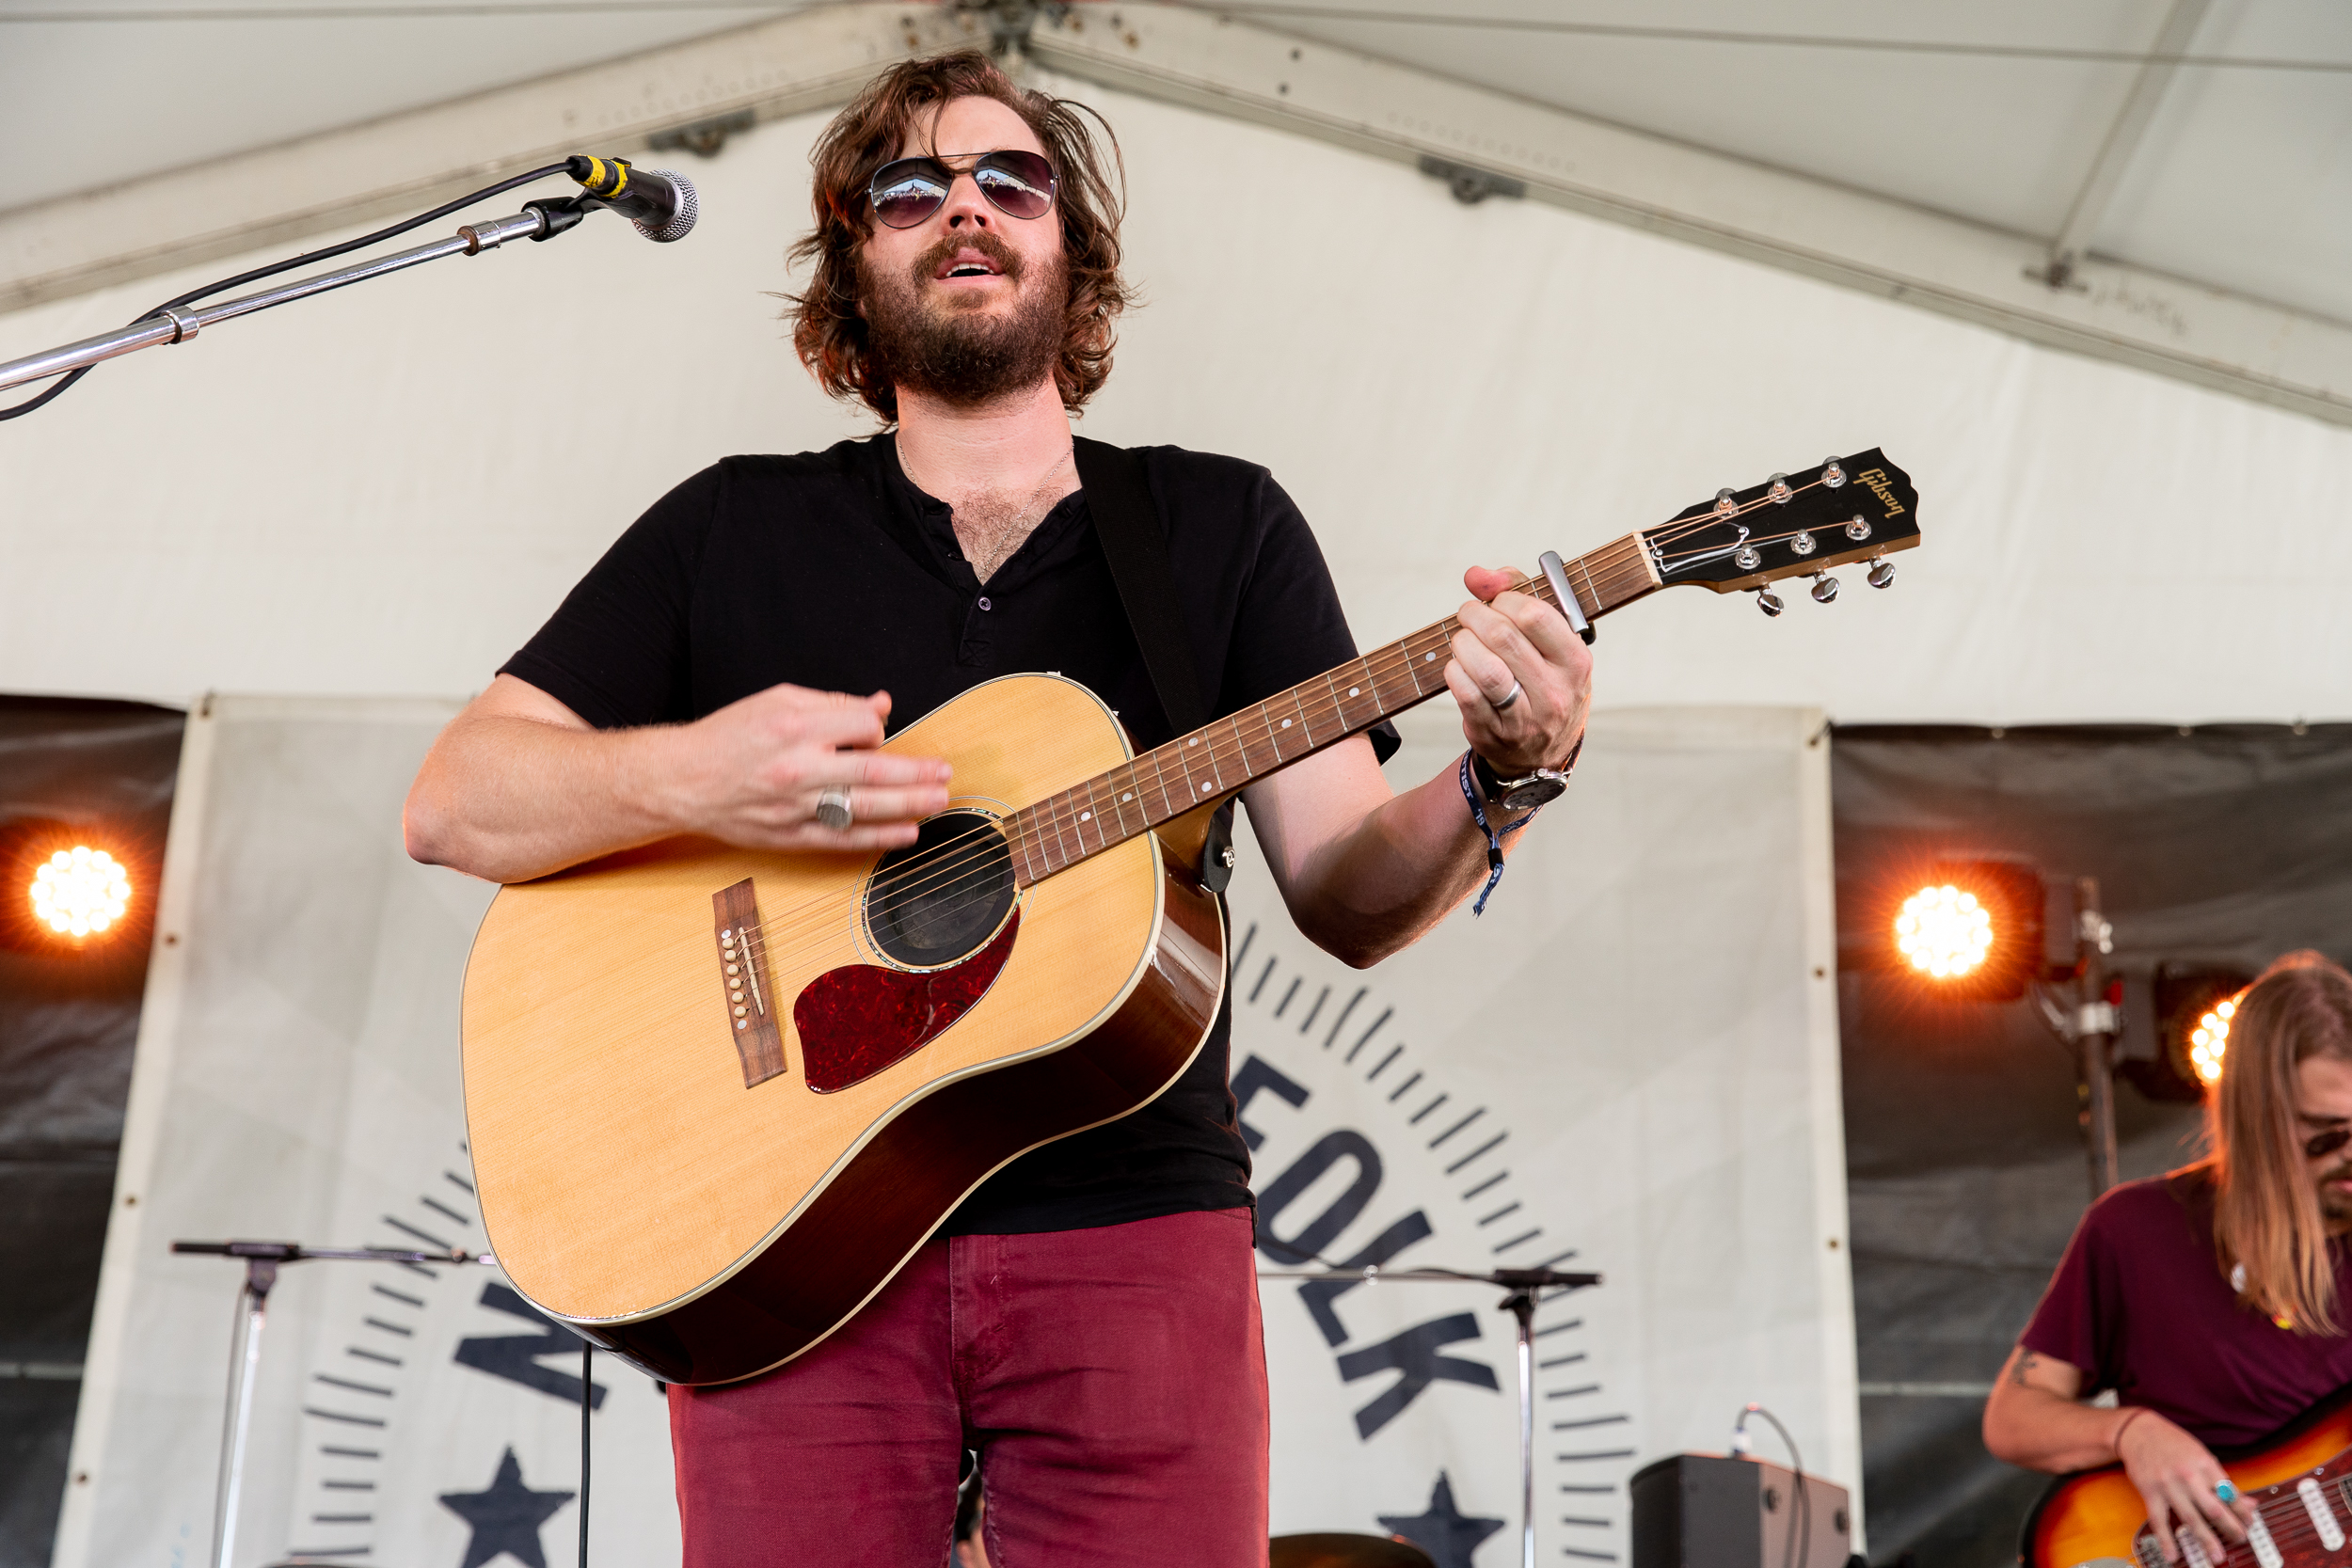 E.B. the Younger at Newport Folk Festival (Photo by Mauricio Castro)